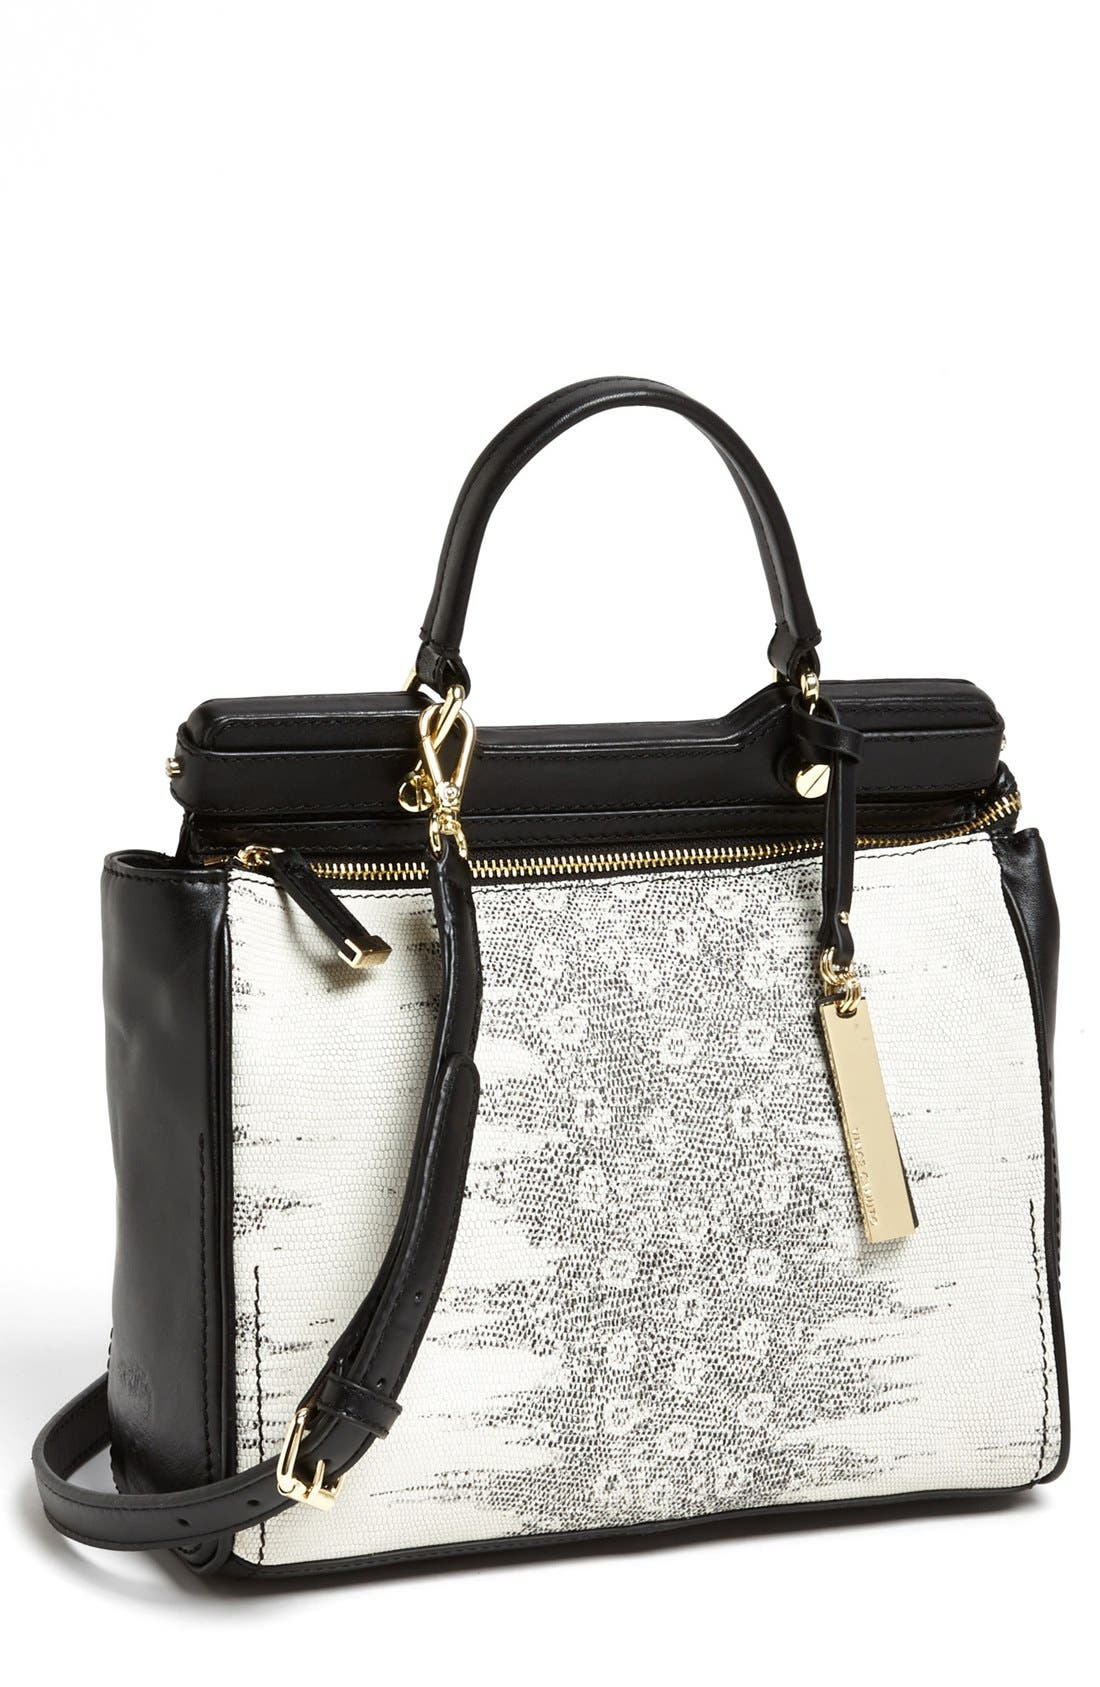 Alternate Image 1 Selected - Vince Camuto 'Fiona - Small' Crossbody Bag